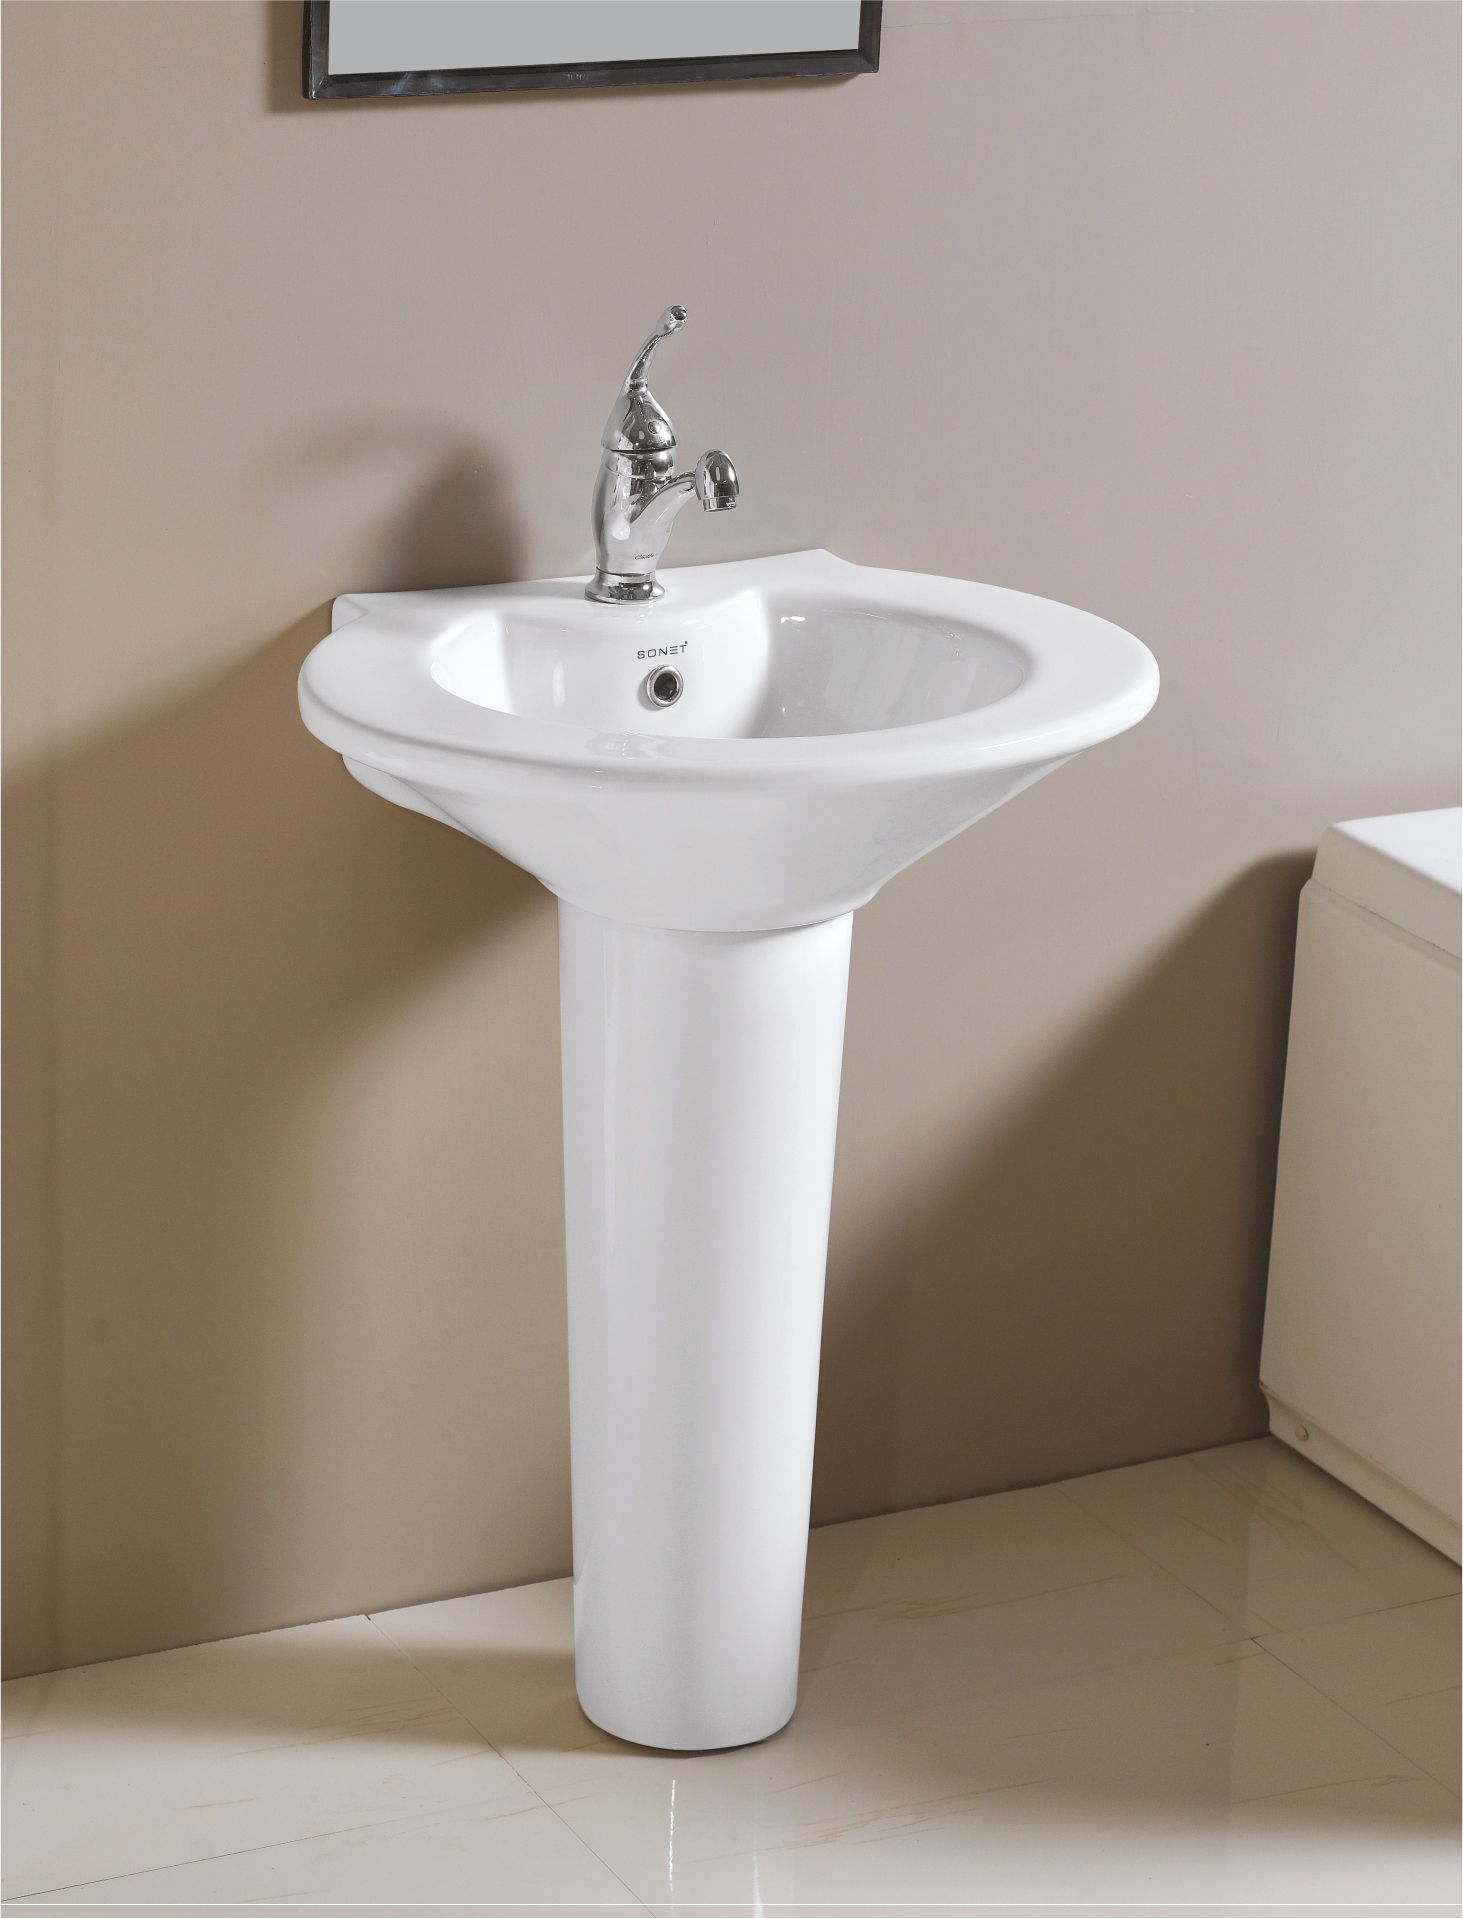 this is classic pedestal wash basin white from sonet india for